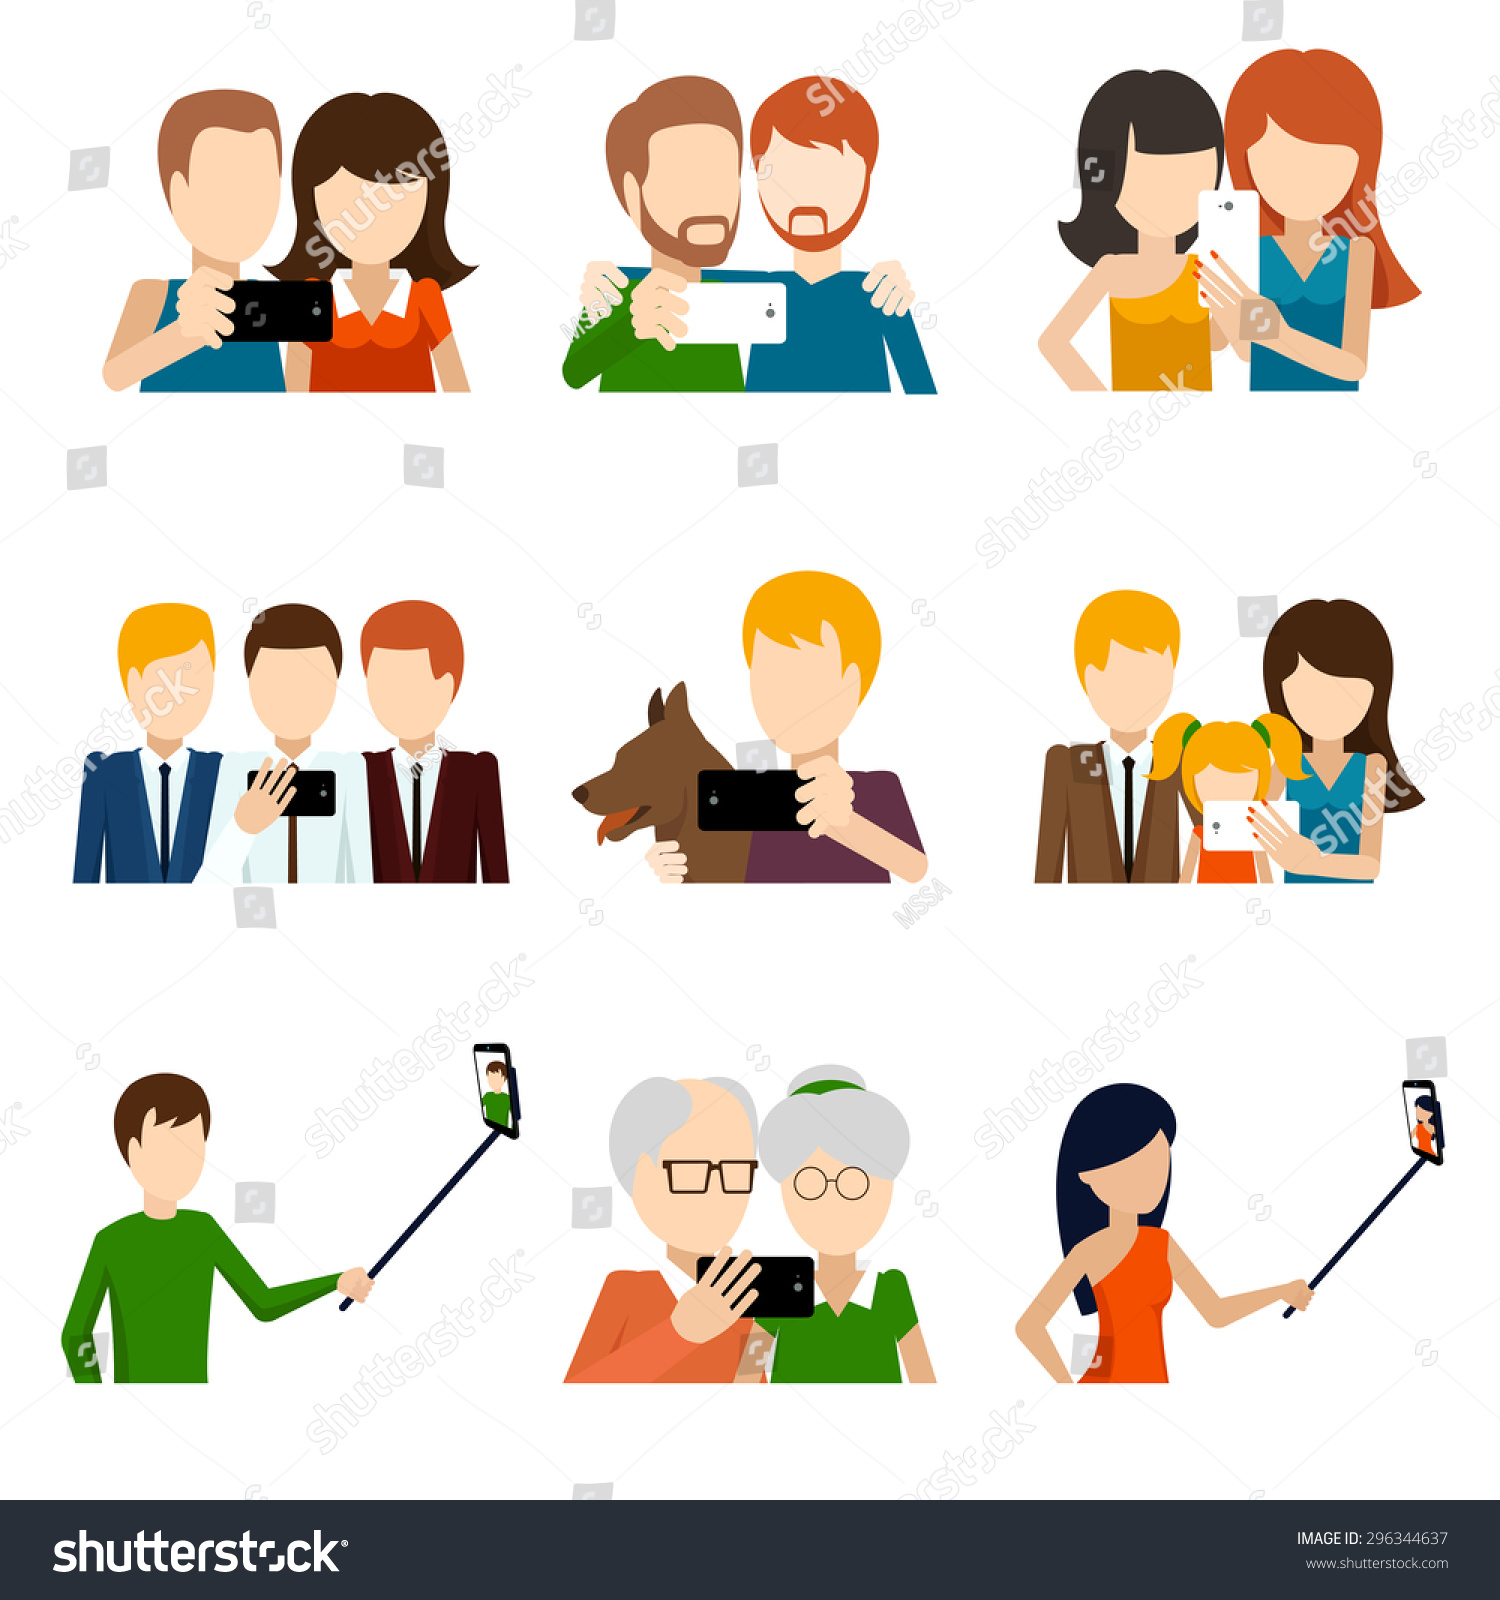 Selfie Icons Set Flat Design Style Stock Vector 296344637 ...